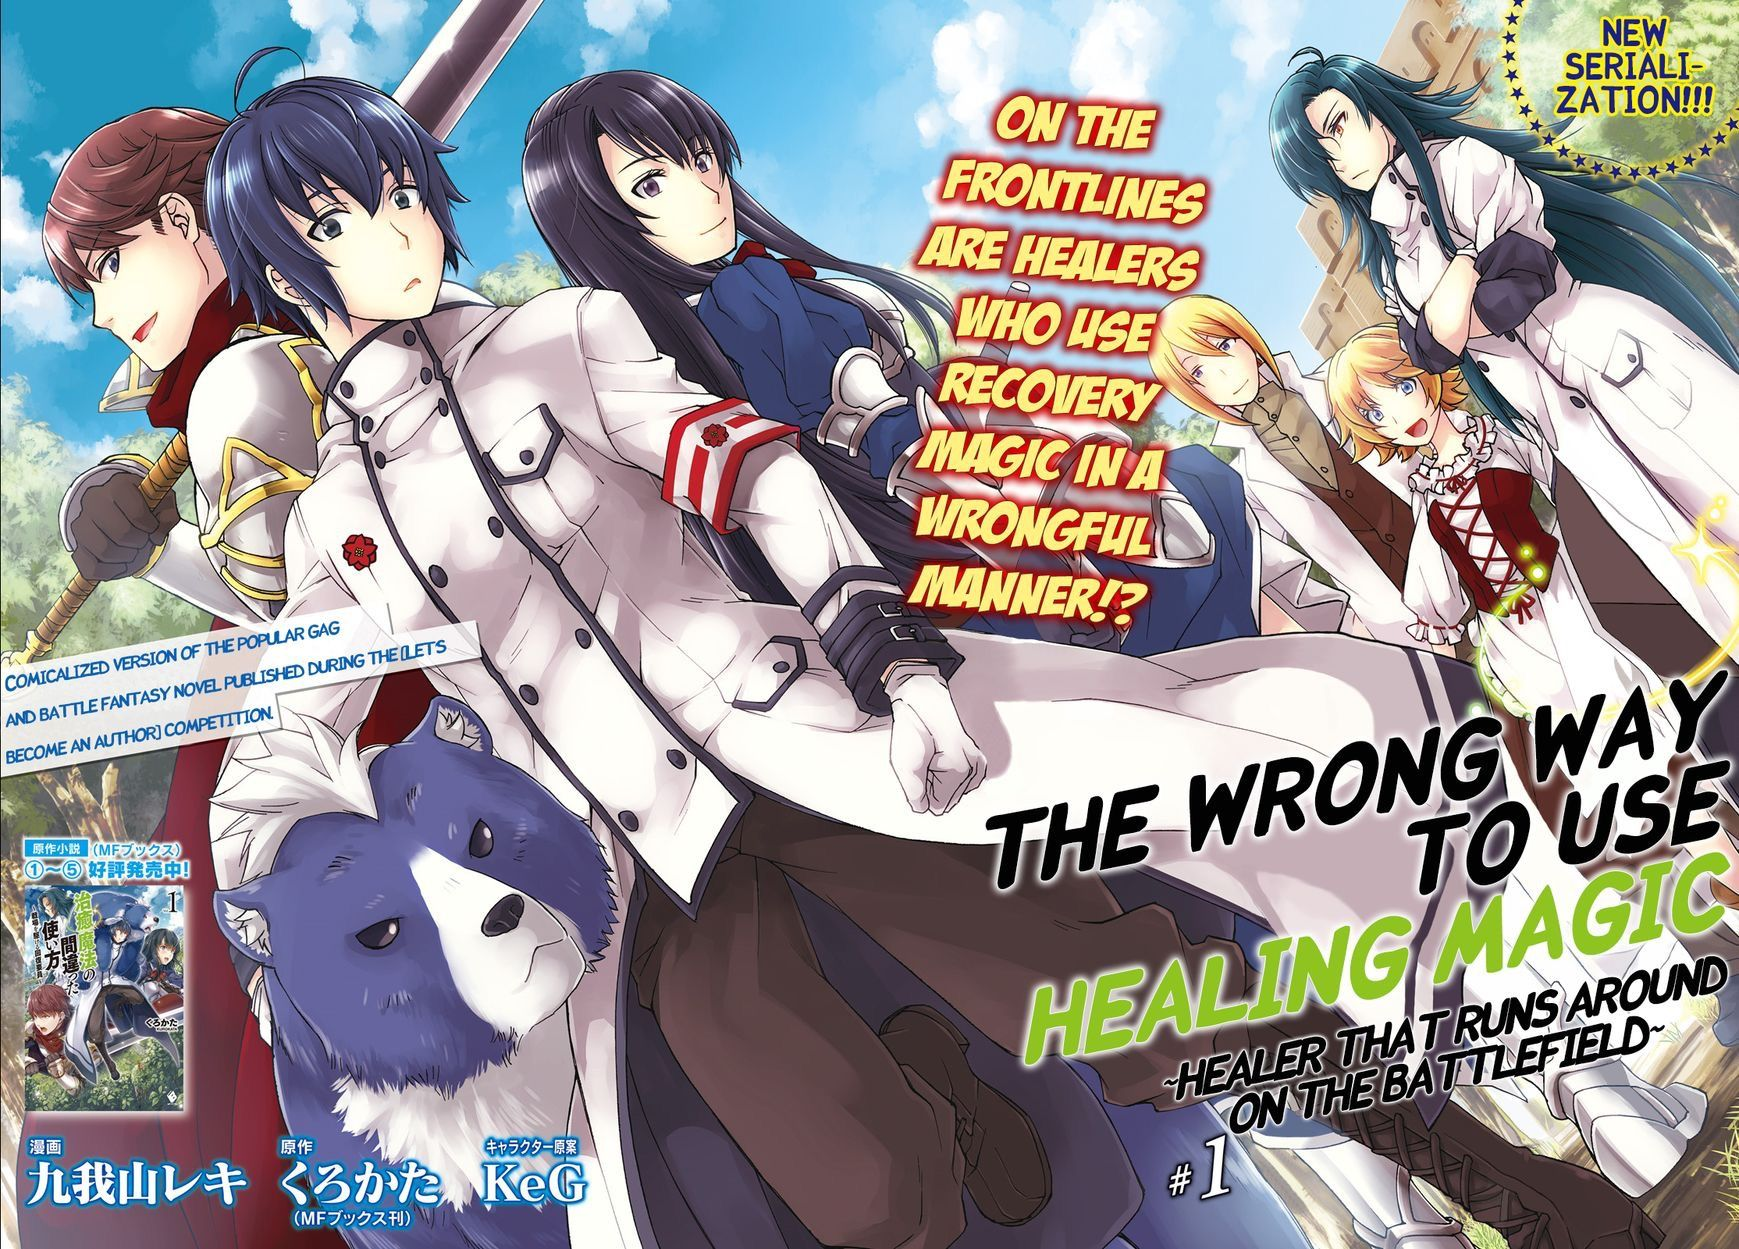 The Wrong Way To Use Healing Magic Time to plan and prepare for the upcoming events, better to use that knowledge to get ahead rather than fight with gods. the wrong way to use healing magic